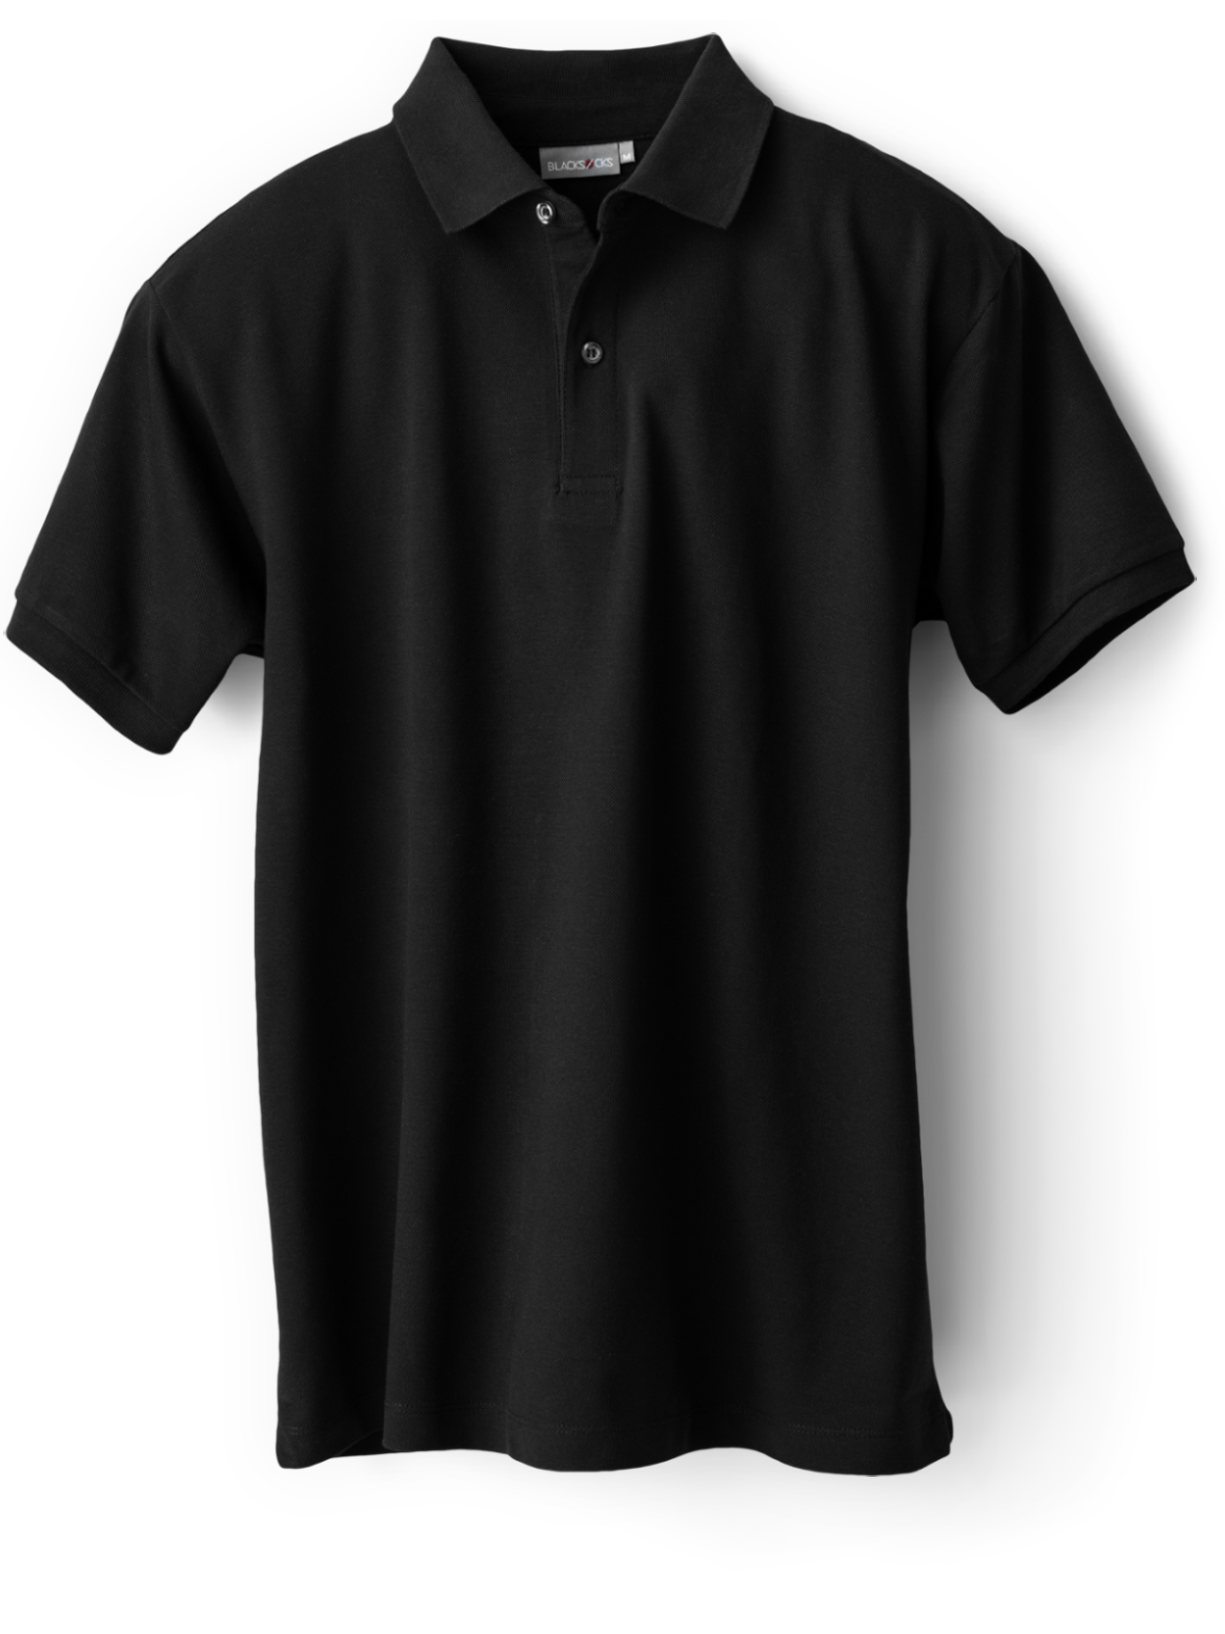 Black polo t-shirt.